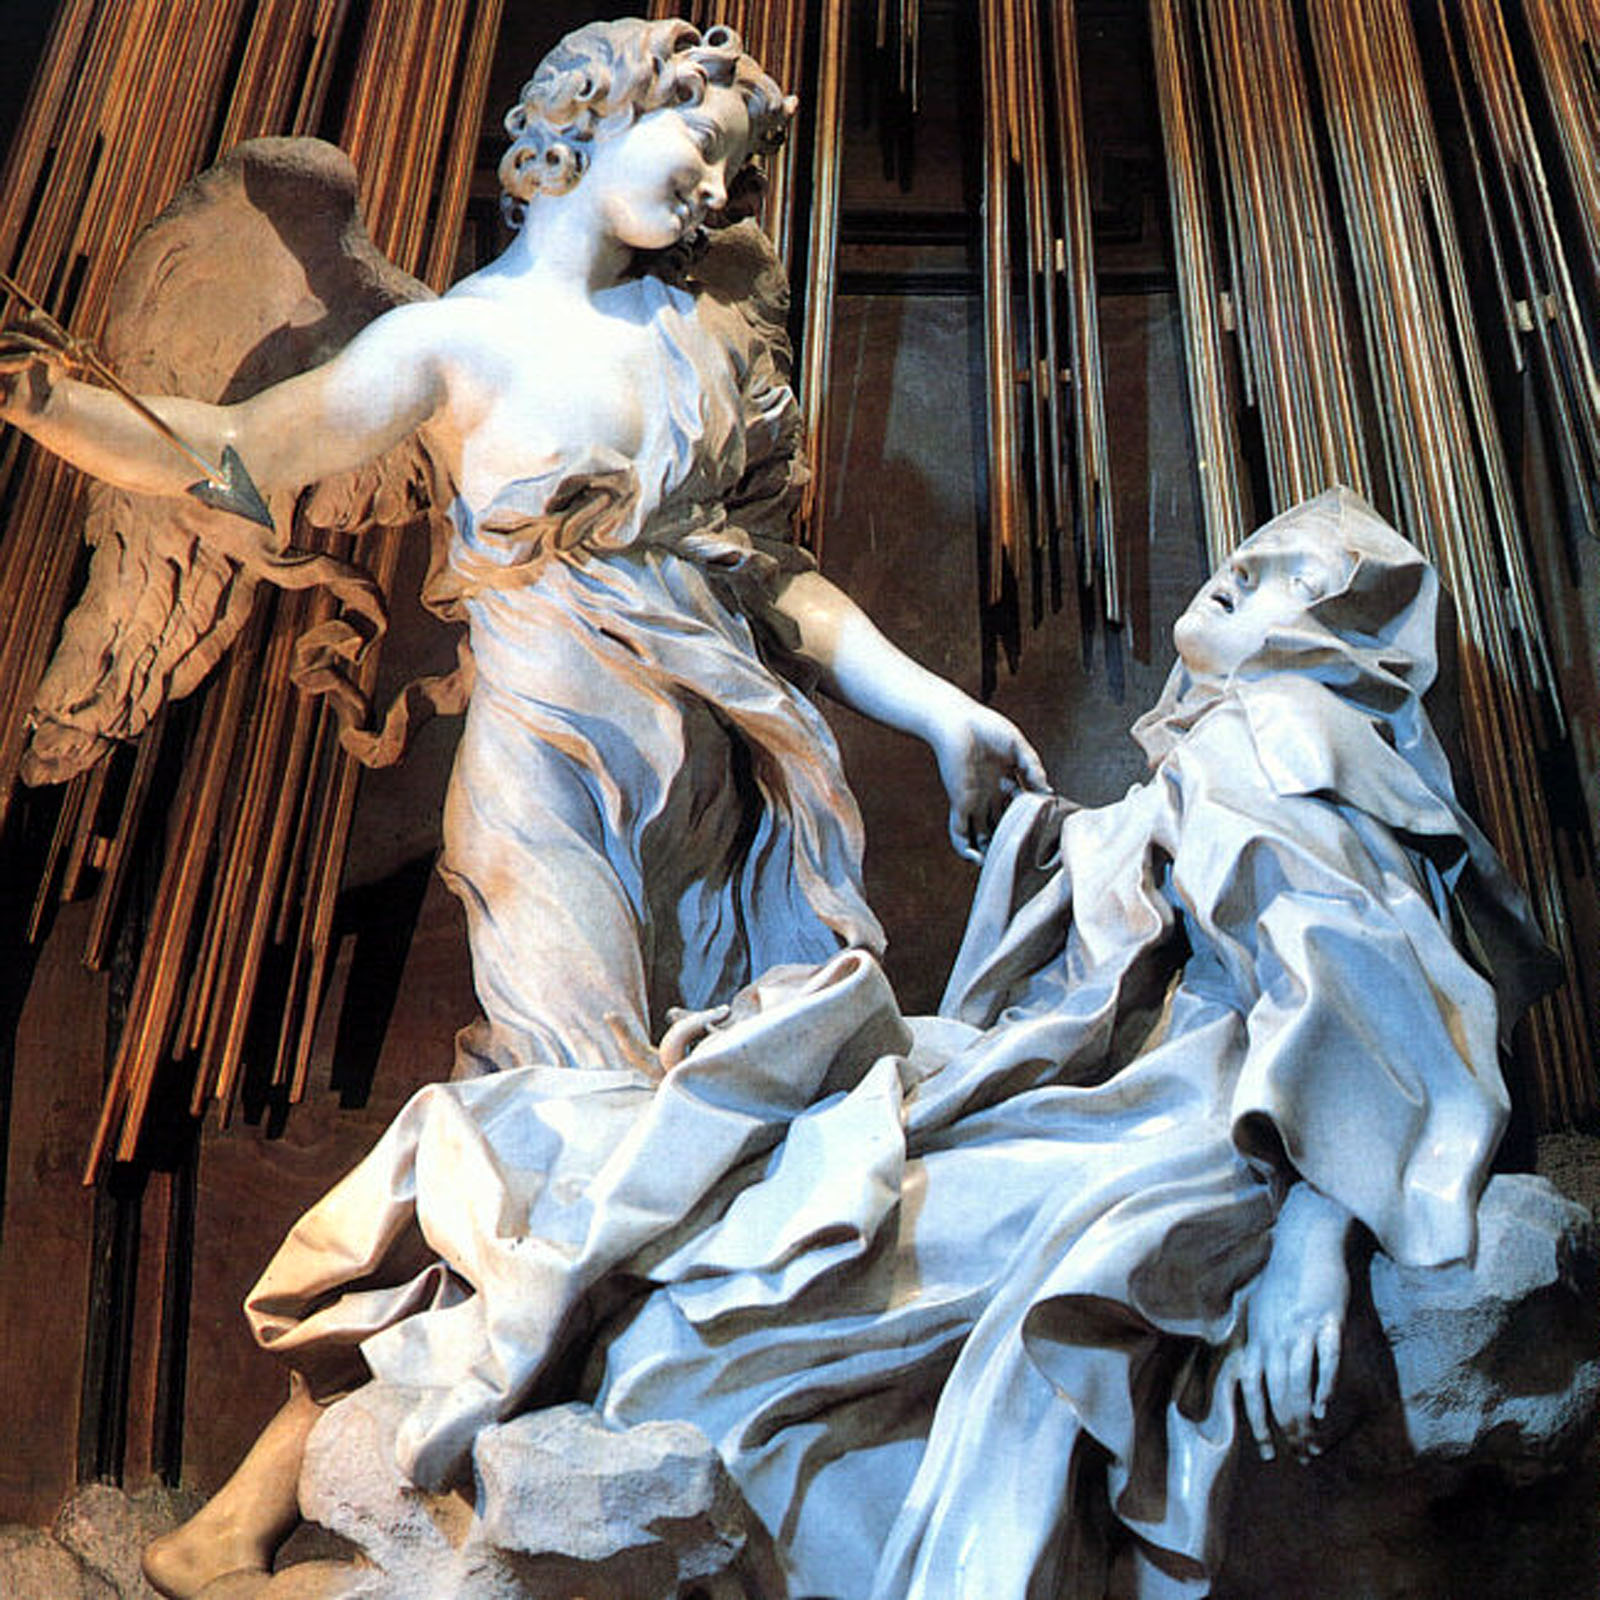 Bernini, Ecstasy of Saint Teresa